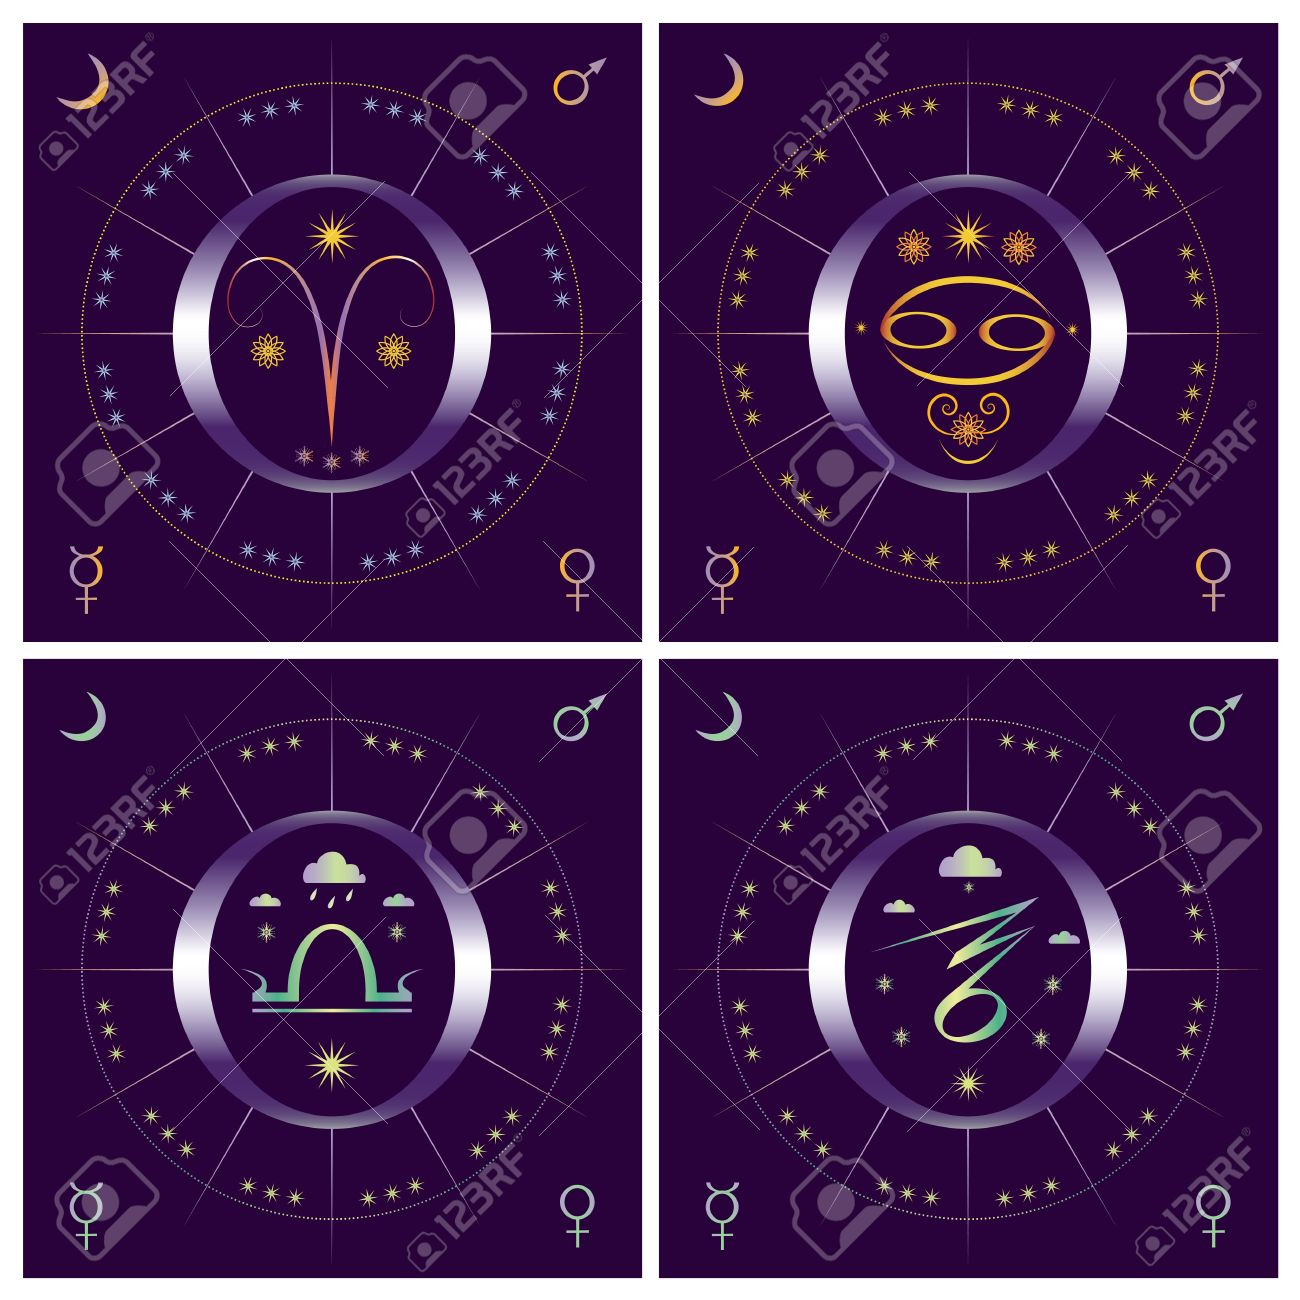 Set of allegorical vector illustration of 4 seasons with zodiacal symbols Stock Vector - 16813251